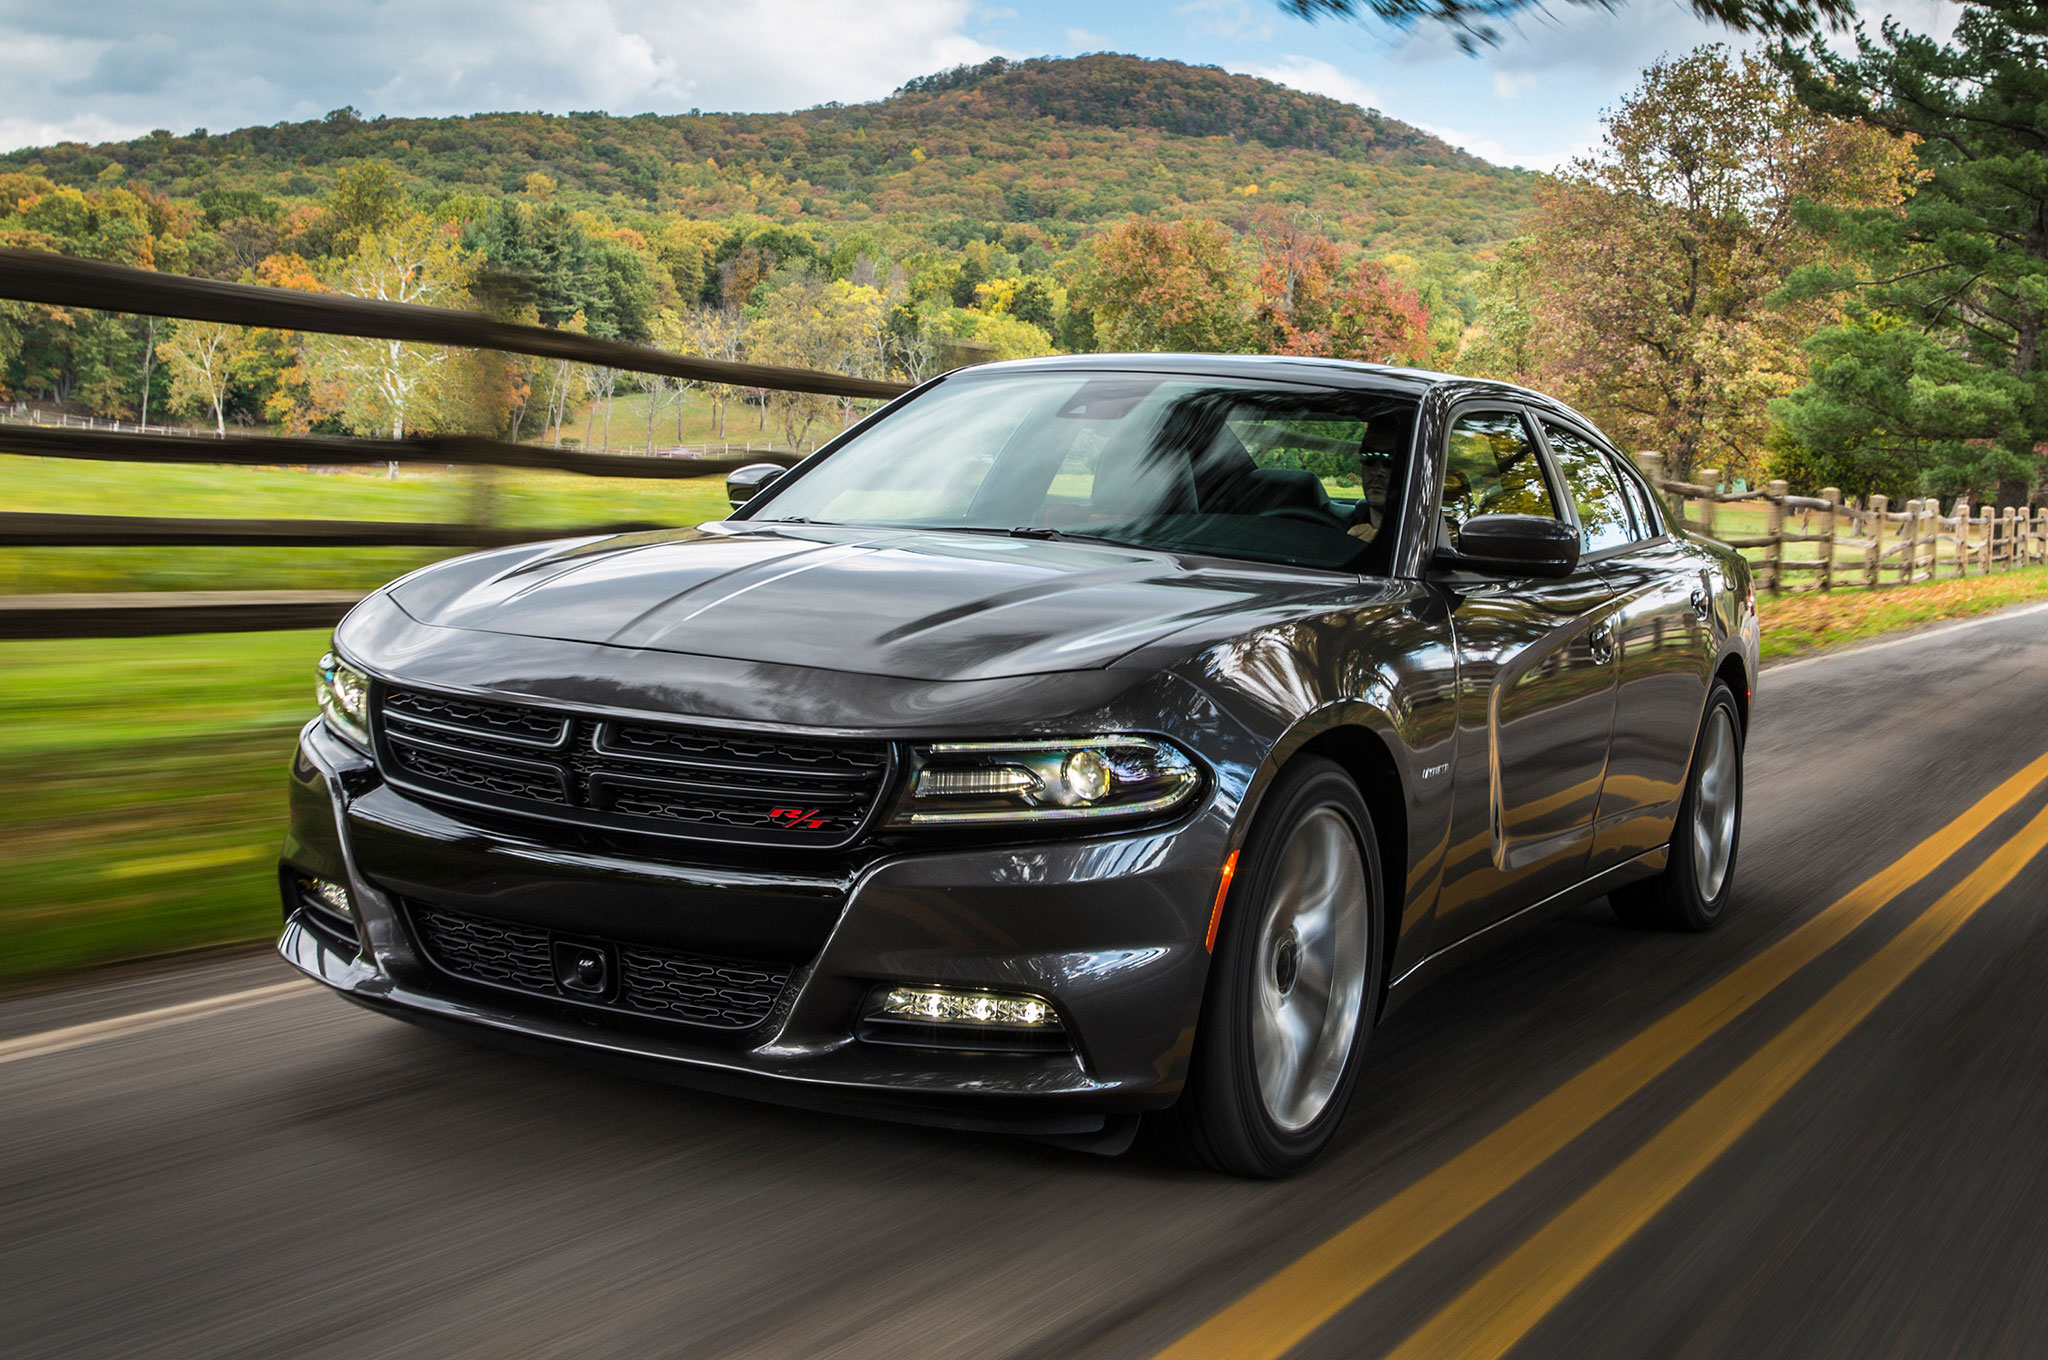 mopar launches limited-edition 2015 dodge charger r/t upgrade package